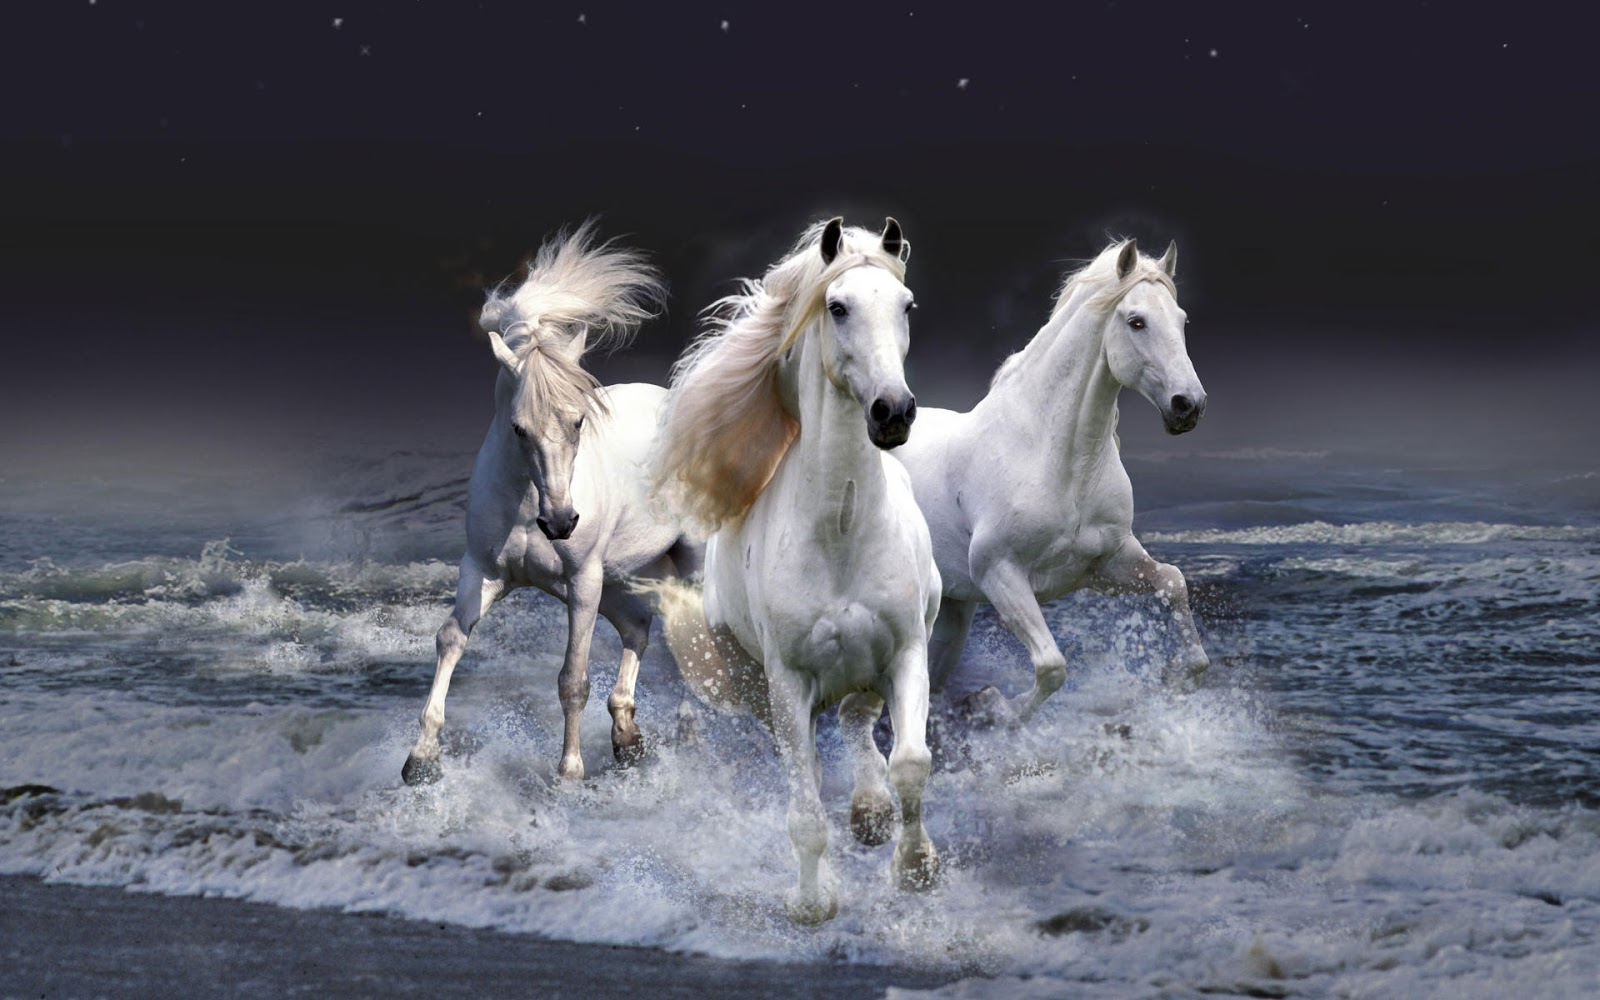 Download   Wallpaper Horse Water - Horse-+(3)  Collection_142279.jpeg